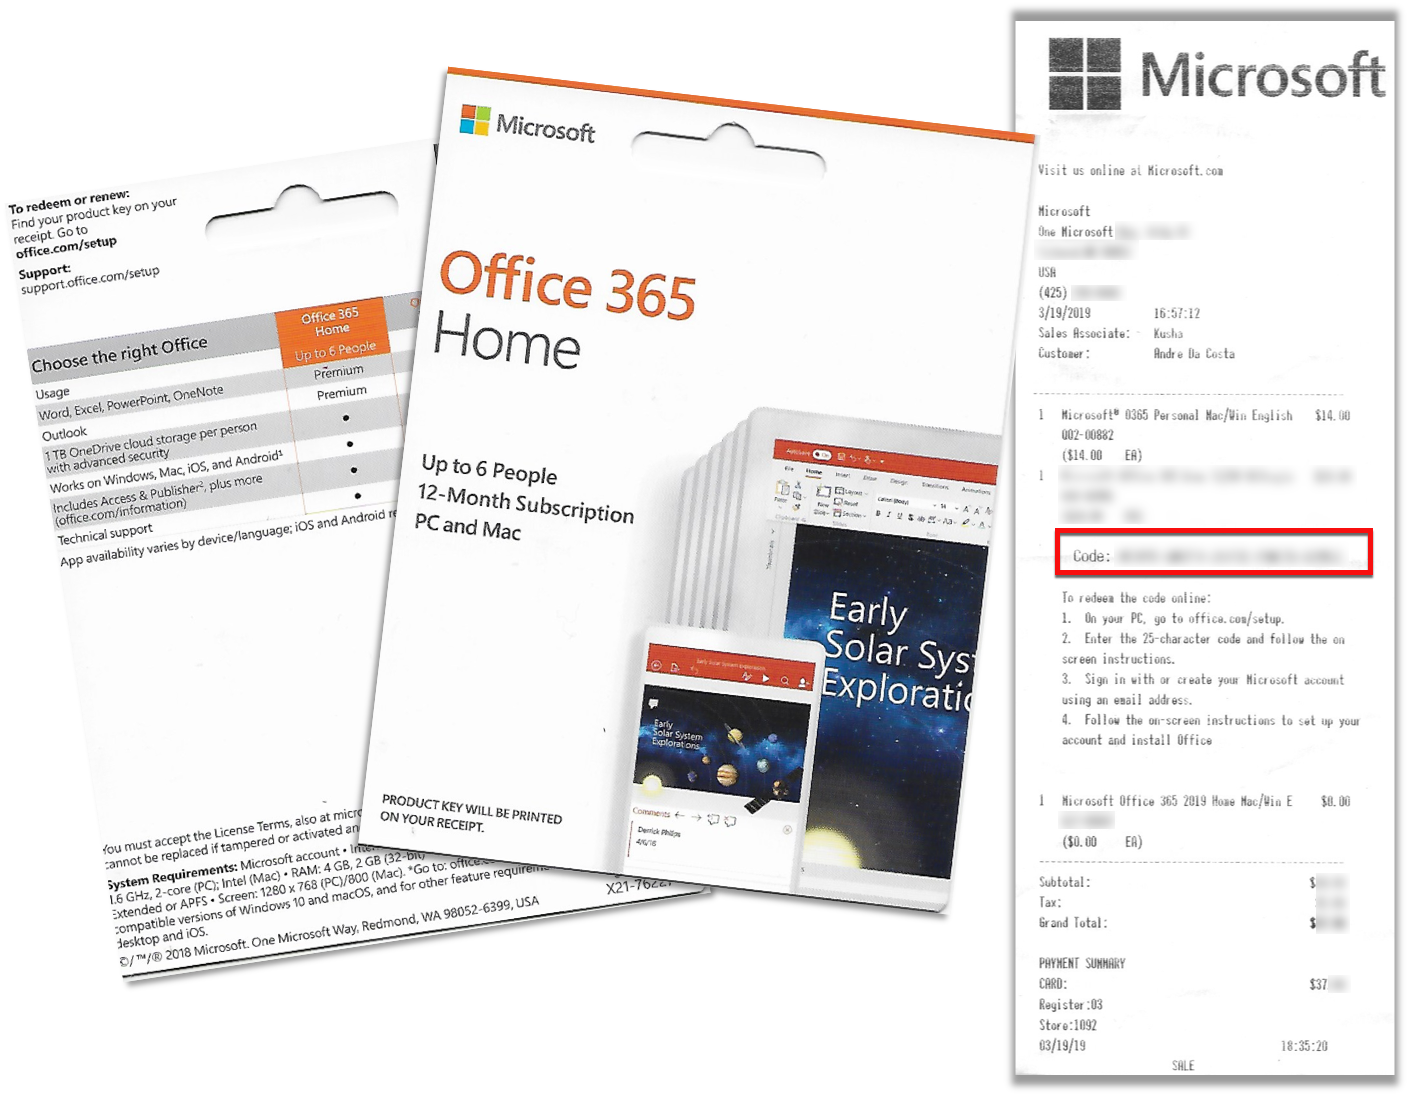 How to Find Your Microsoft Office 365, 2019, 2016, 2013, 2010 or 2007 Product Key 484a8d2a-bbc1-4b85-a6ed-aa15a718ef1b?upload=true.png